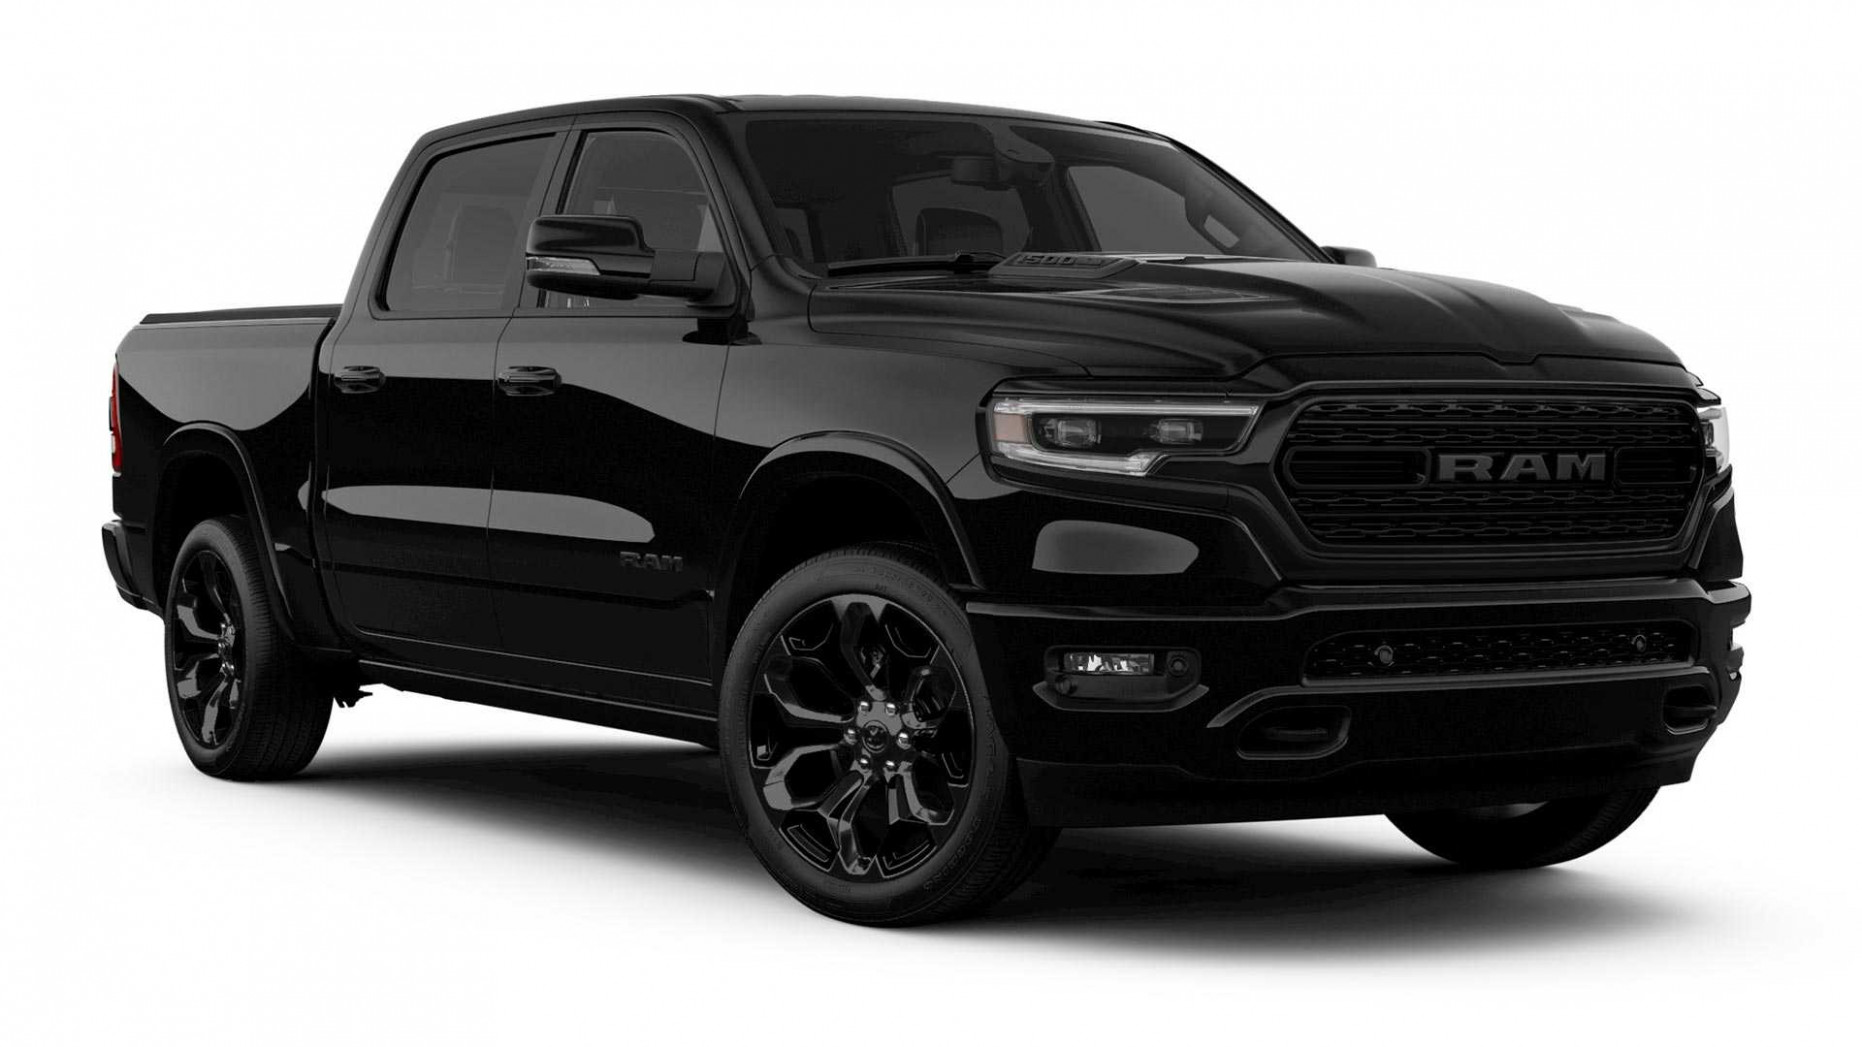 7 Ram 7 and Ram Heavy Duty pickup truck special editions - dodge ram 2020 price